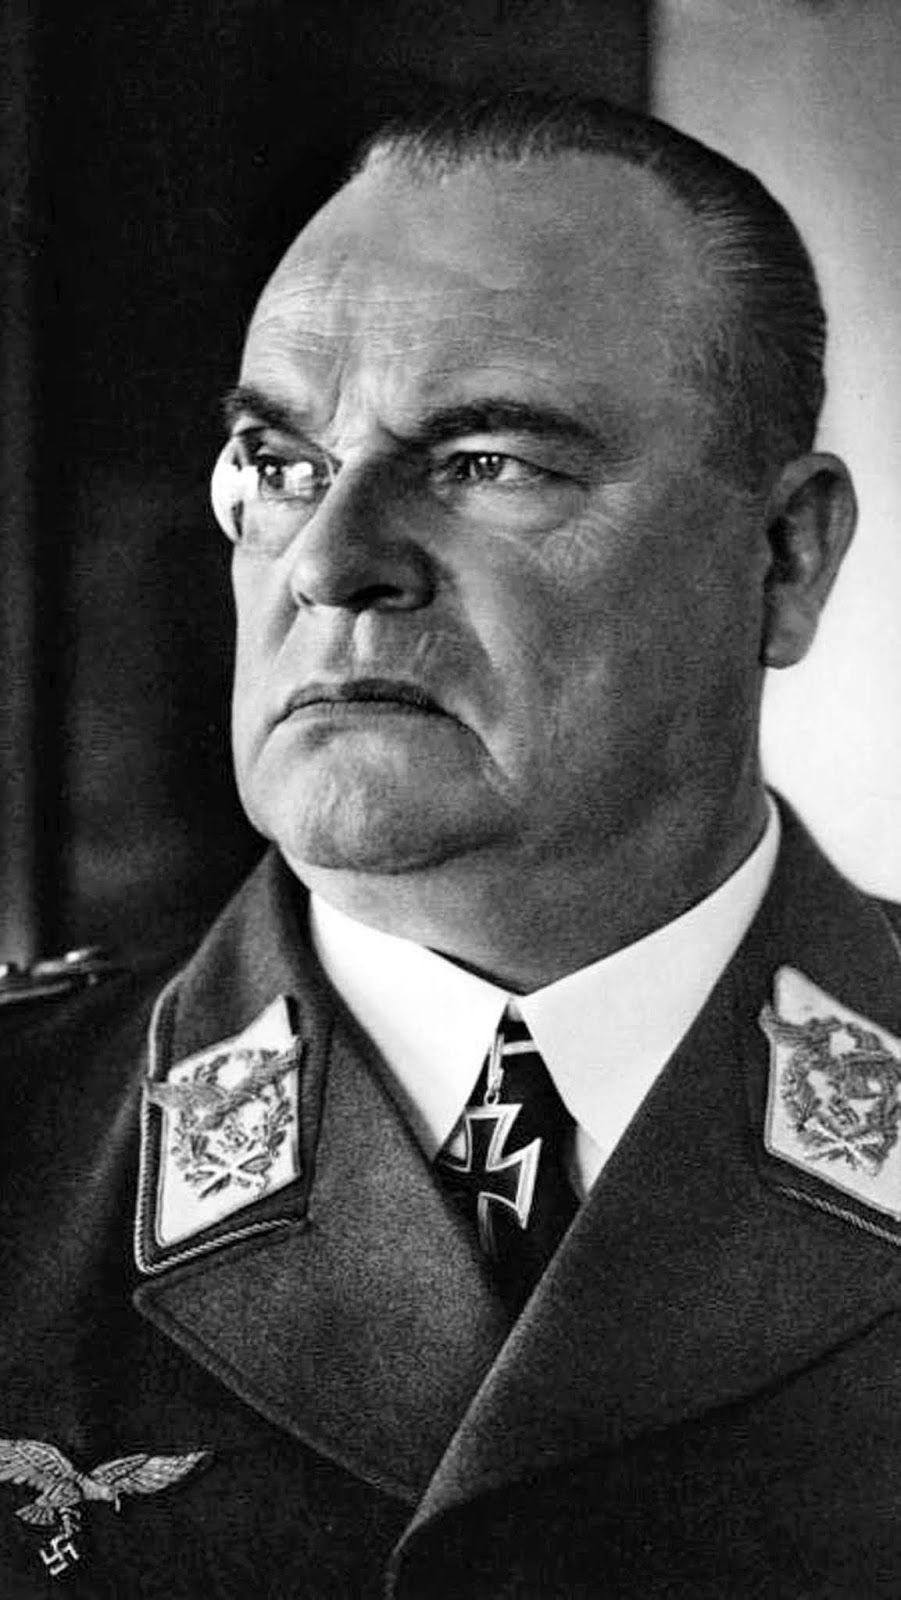 Hugo Sperrle commanded Luftlotte 3 in France throughout the war. The failures during the Battle of Britain weren't his fault: he wanted to continue attacking the airfields which almost everyone now agrees was the winning strategy. Goering once mentioned that Sperrle was his most